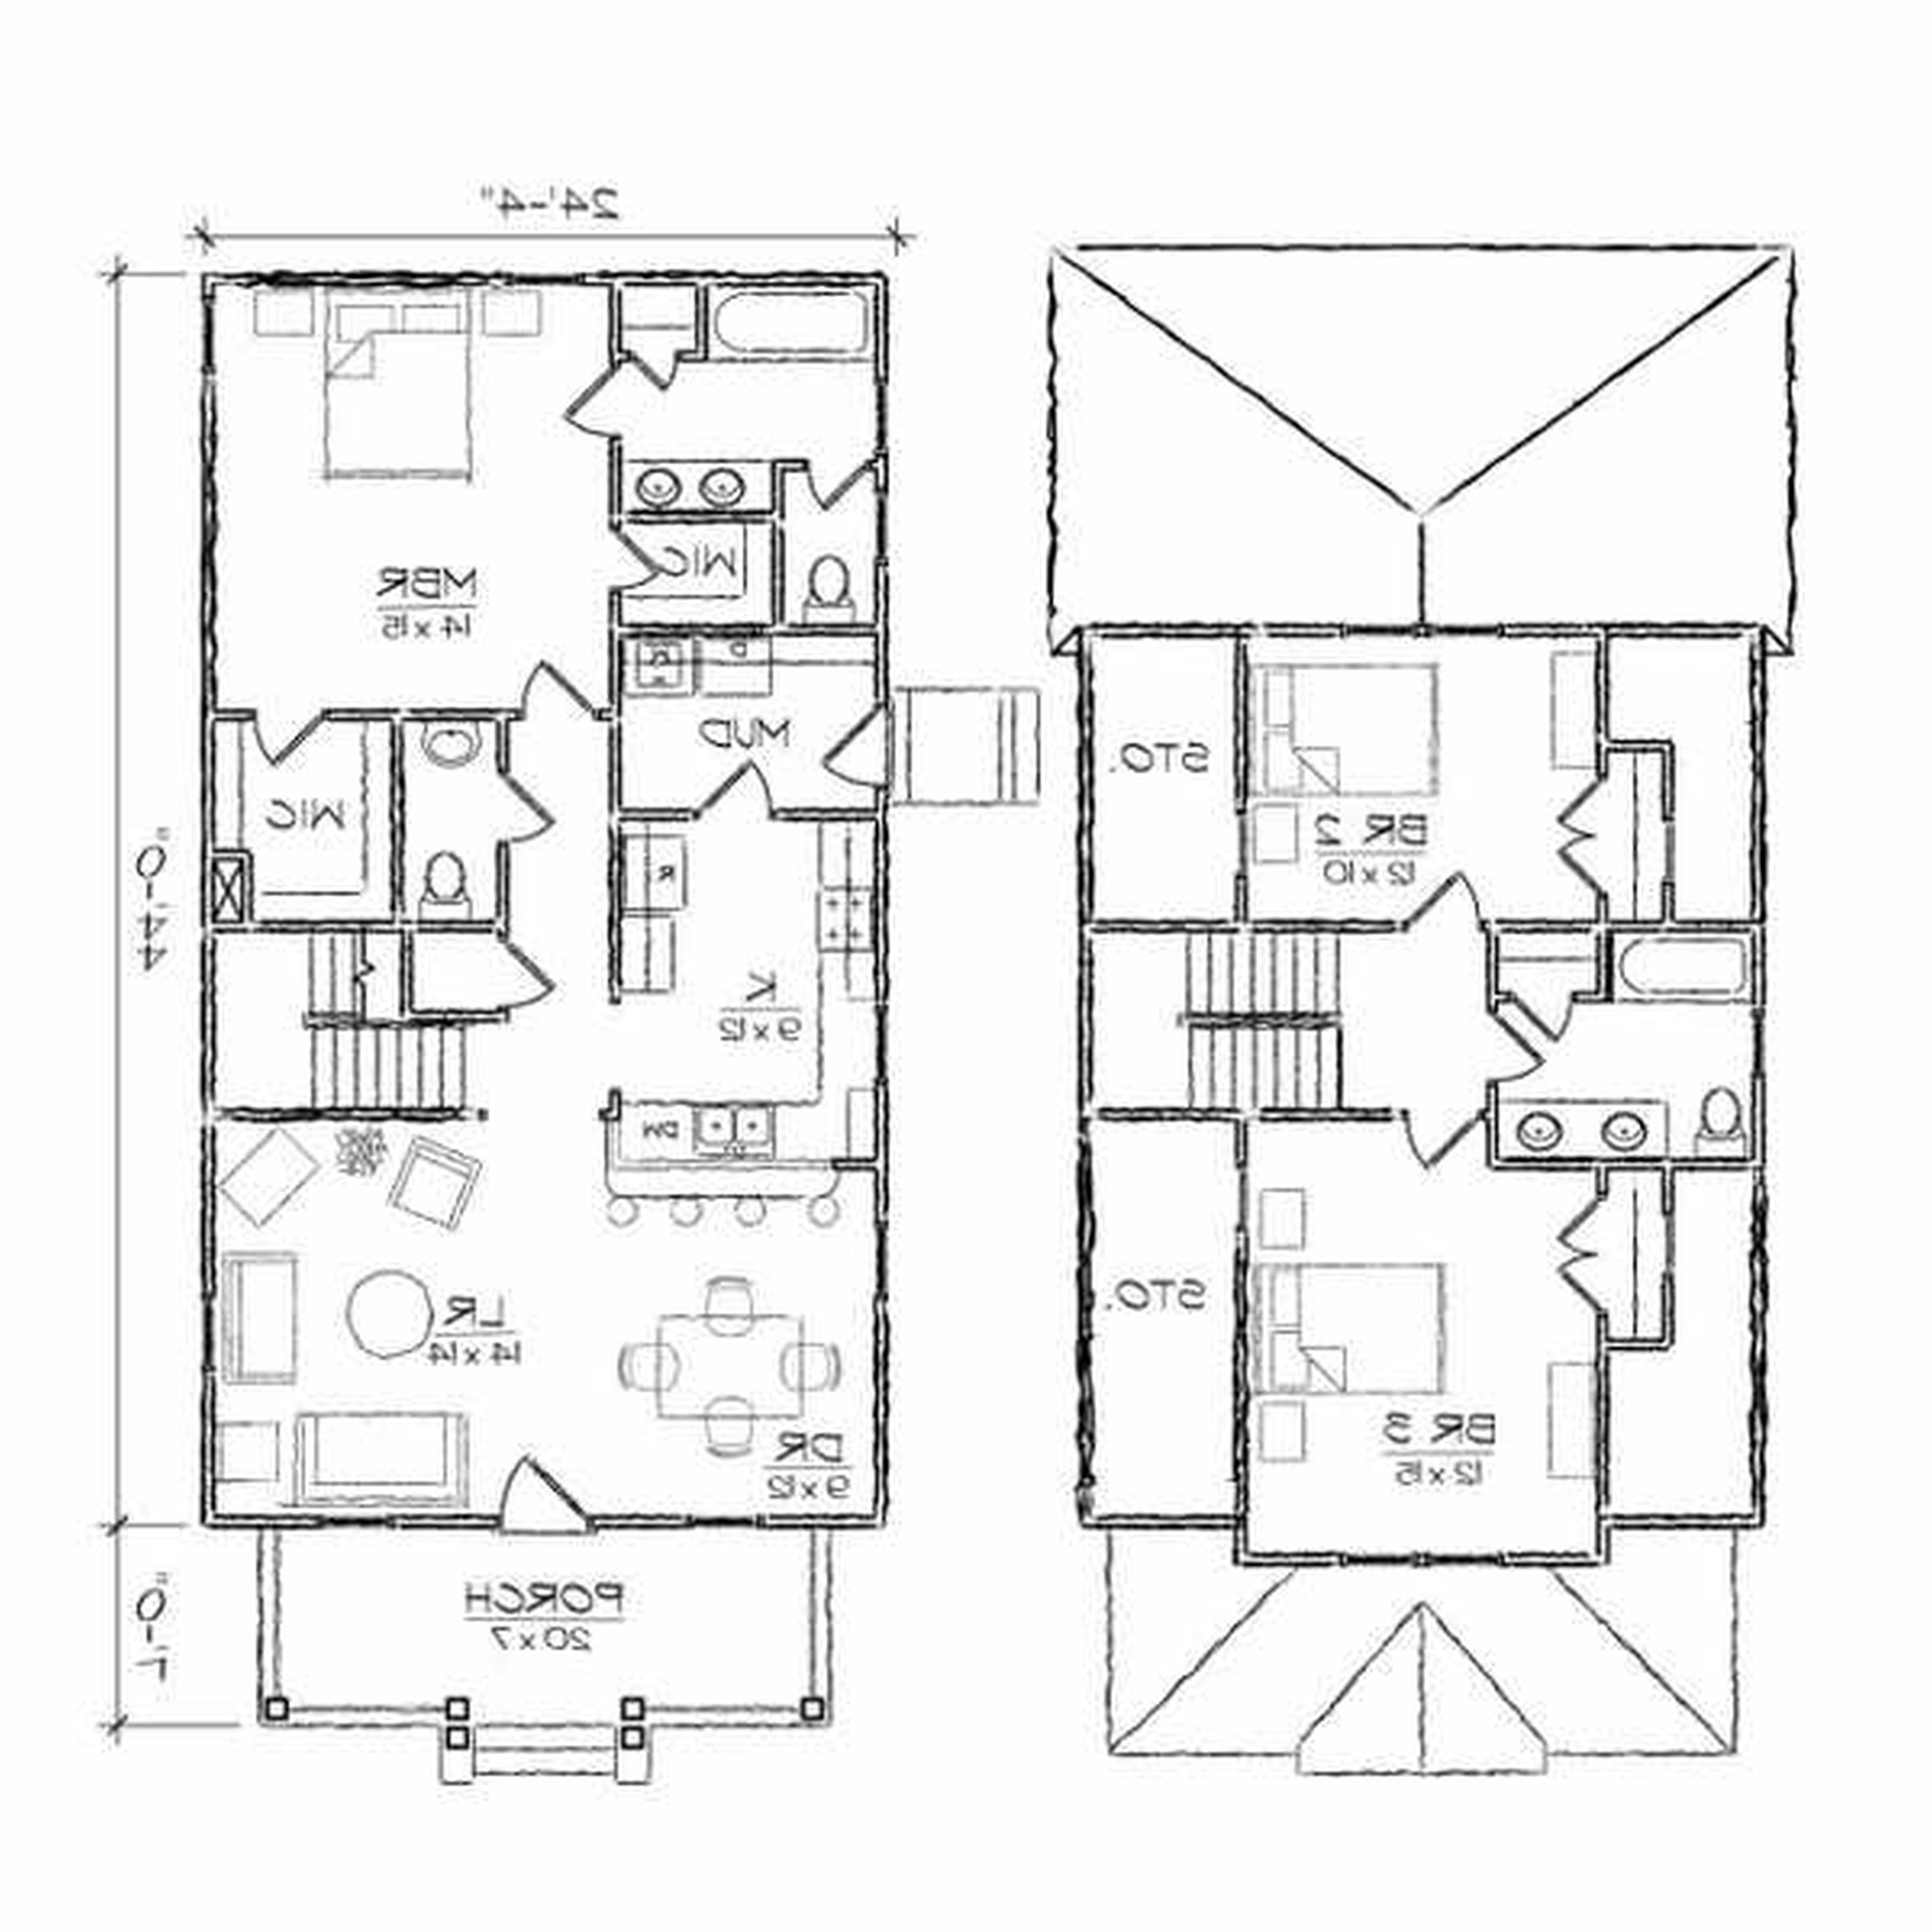 5000x5000 Interior Design Plan Drawing Floor Plans Ideas Houseplans Excerpt